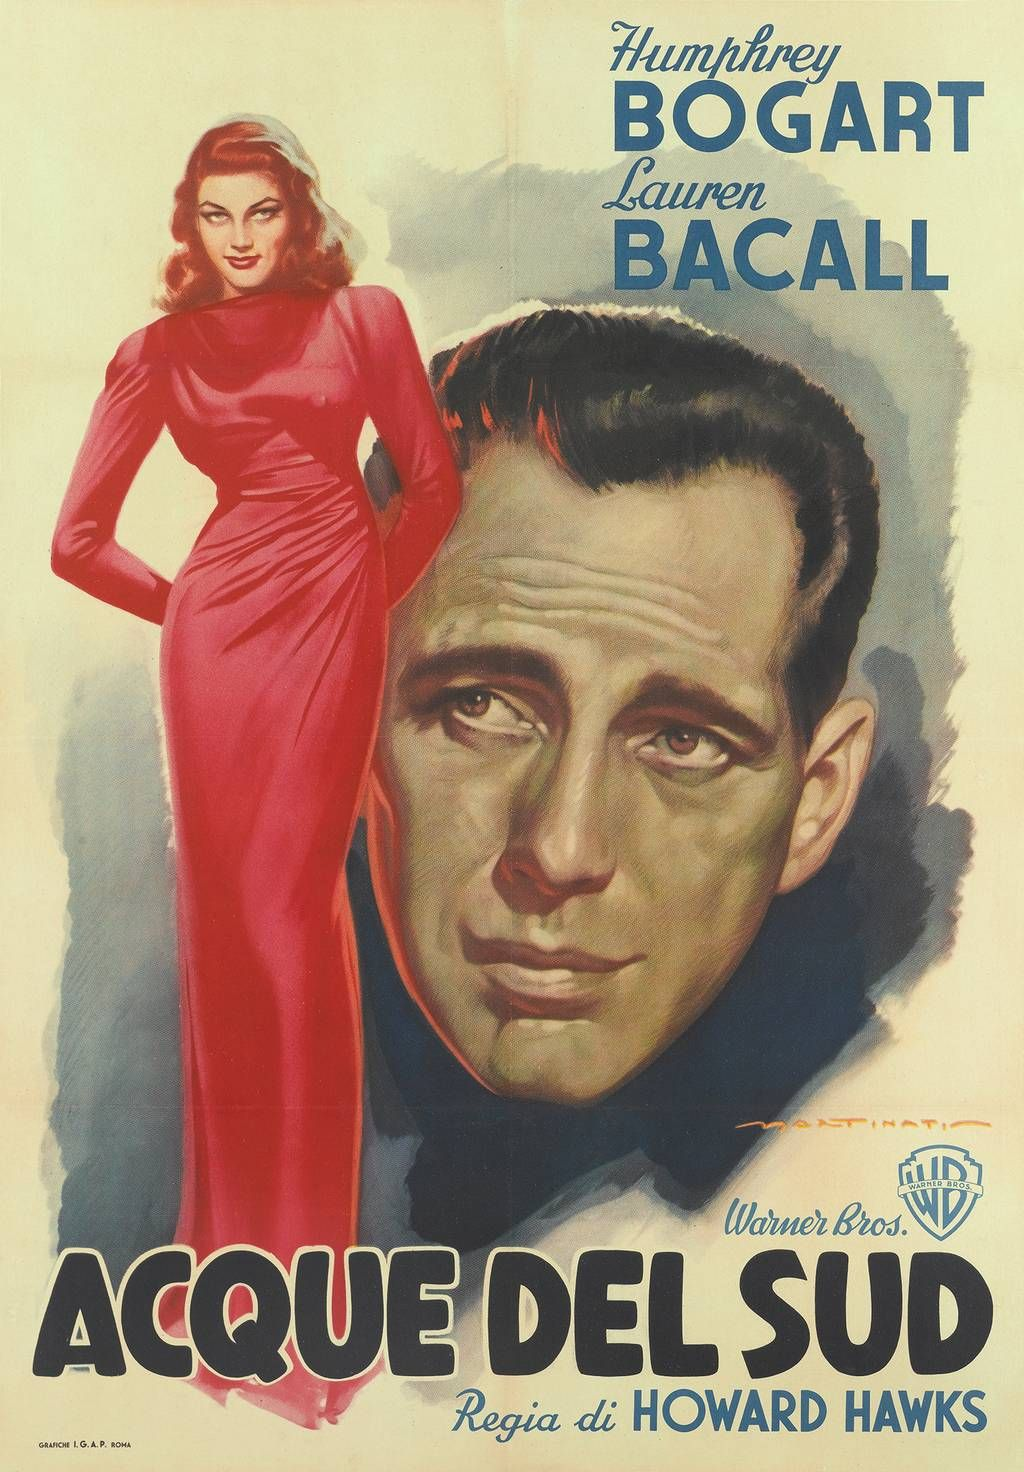 Man Finds Horror Film Posters Worth Five Times Value Of His House Humphrey Bogart Classic Movie Posters Exploitation Film